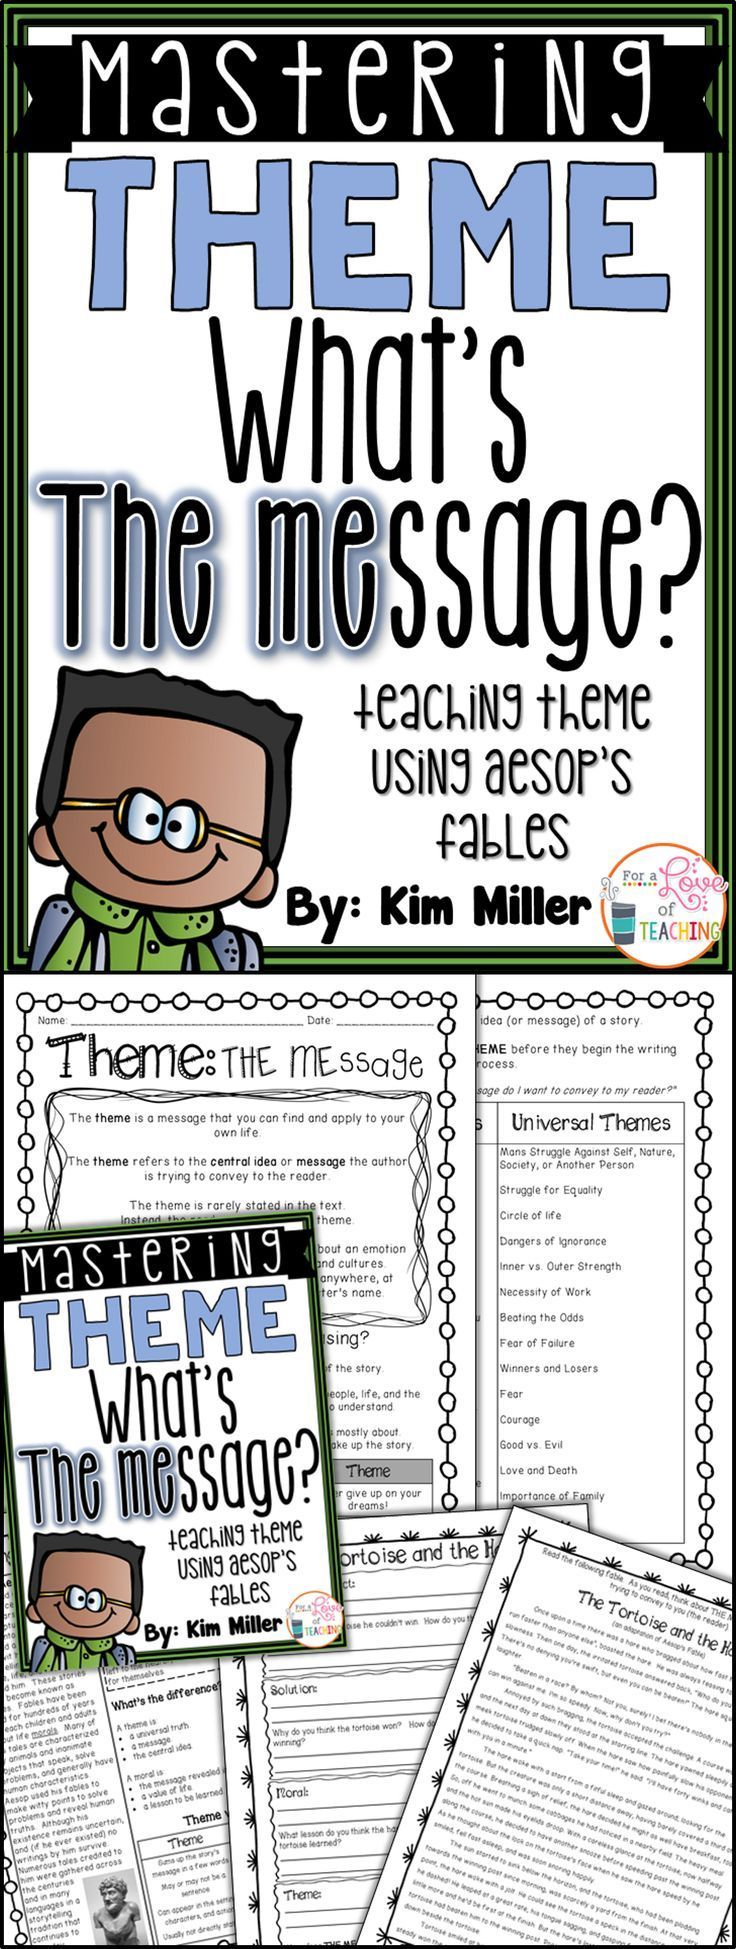 Mastering Theme *What's THE MEssage?* Teaching theme using Aesop's Fables helps students identify the theme easily!